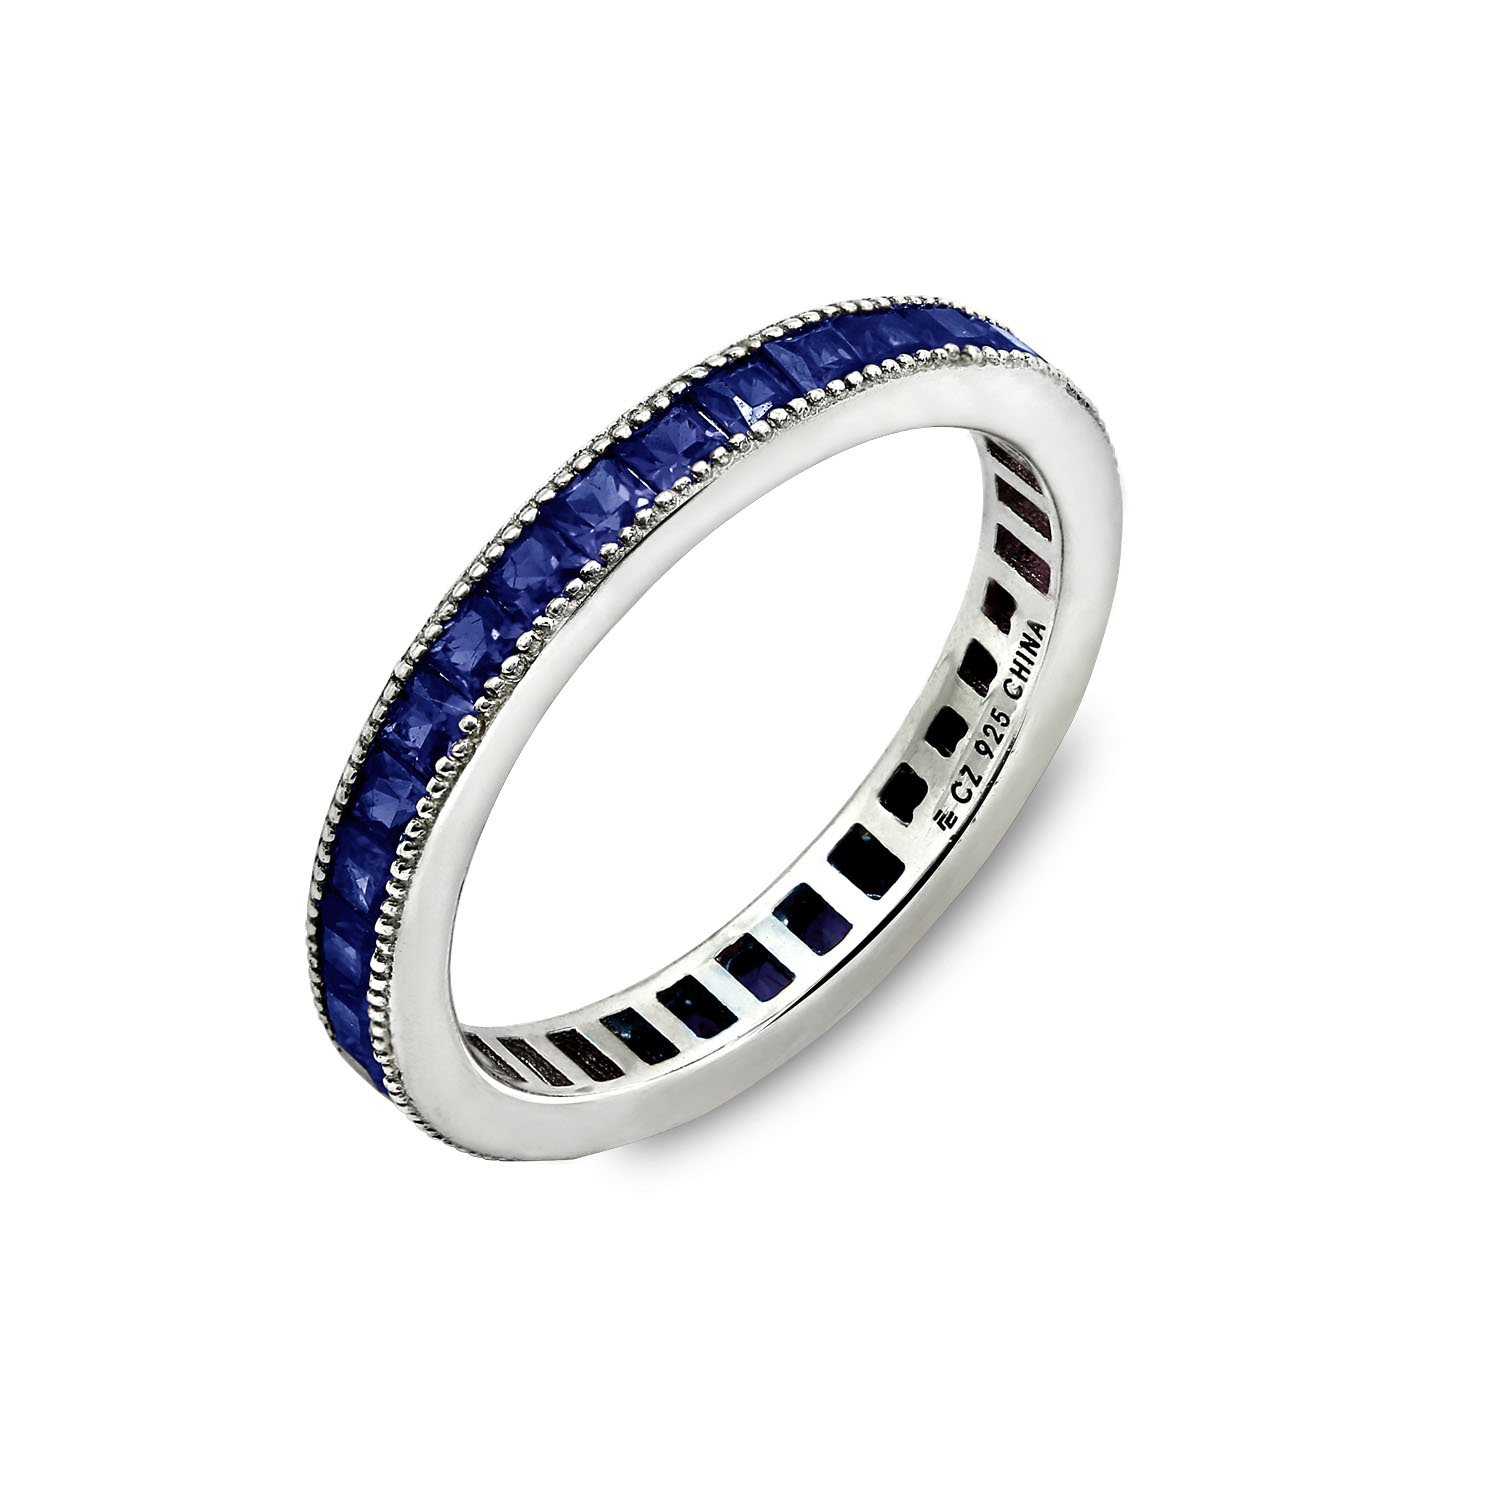 Diamonbliss Rhodium Plated Sterling Silver 1.3 ct Blue Sapphire Cubic Zirconia Eternity Ring- Sapphire, Size 5